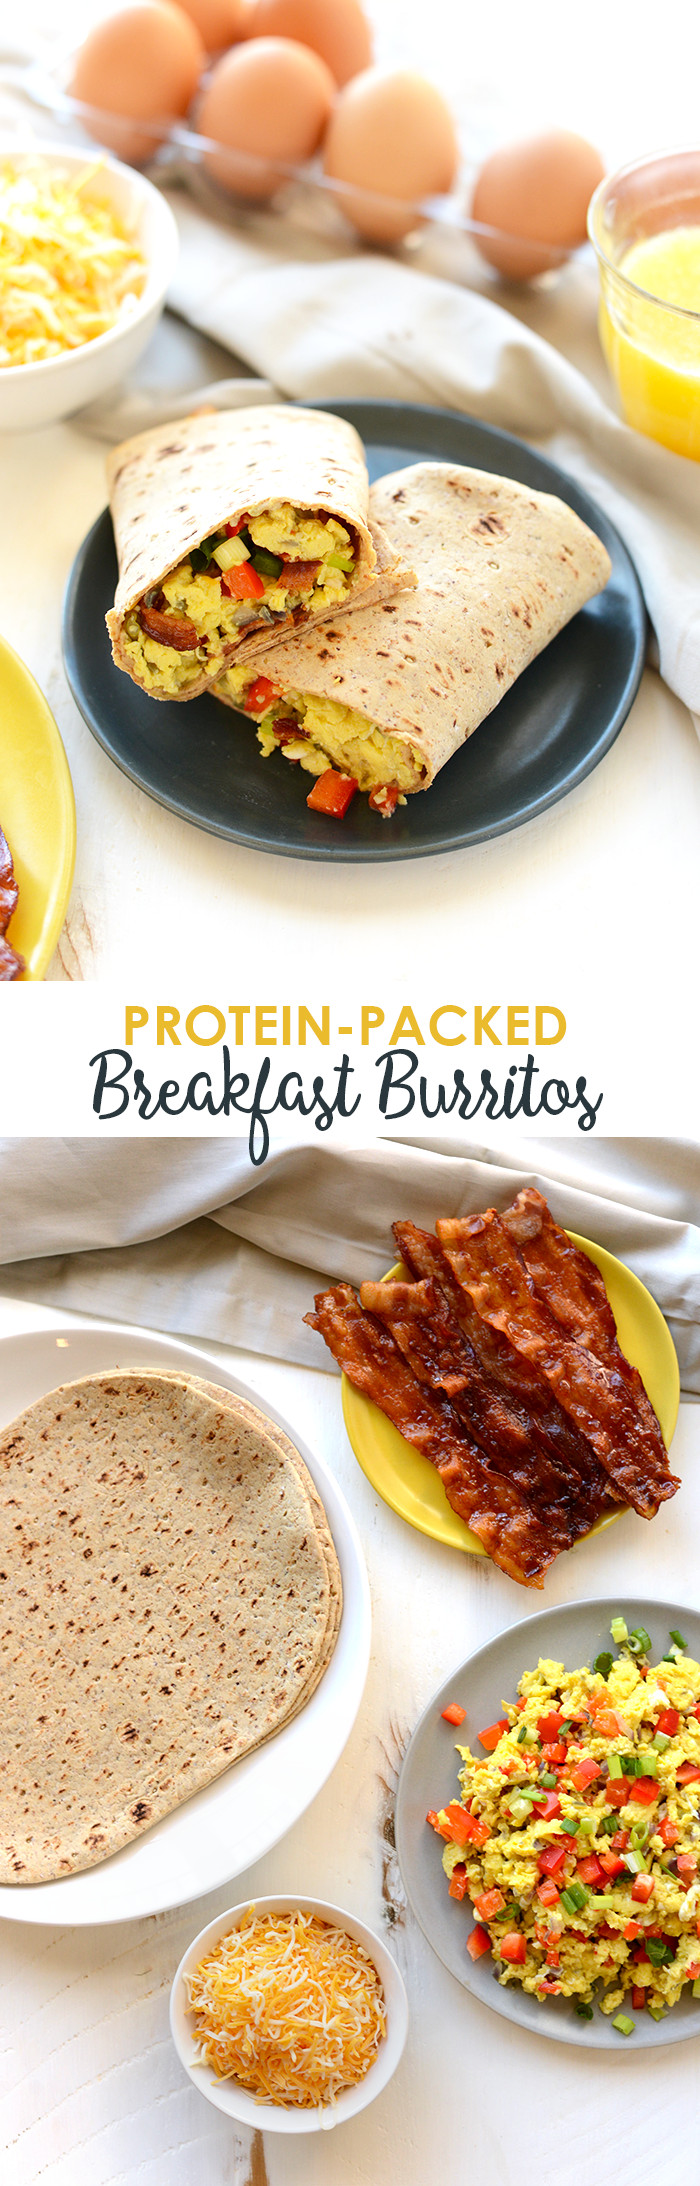 Healthy Breakfast Burrito Meal Prep  Protein Packed Breakfast Burritos Fit Foo Finds